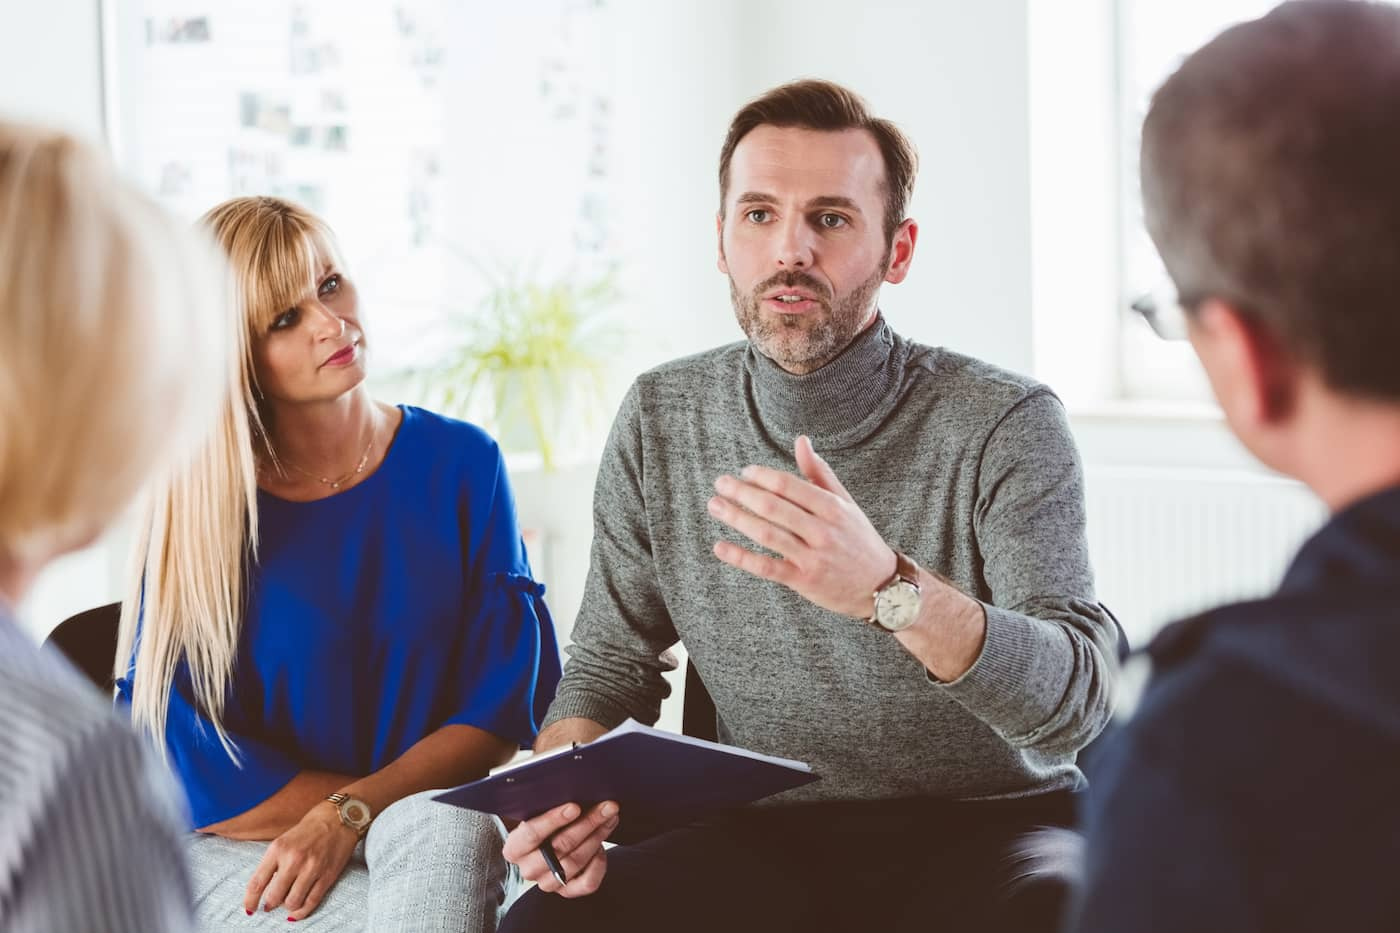 How Can I Get the Necessary Experience to Become Licensed as a Counselor?